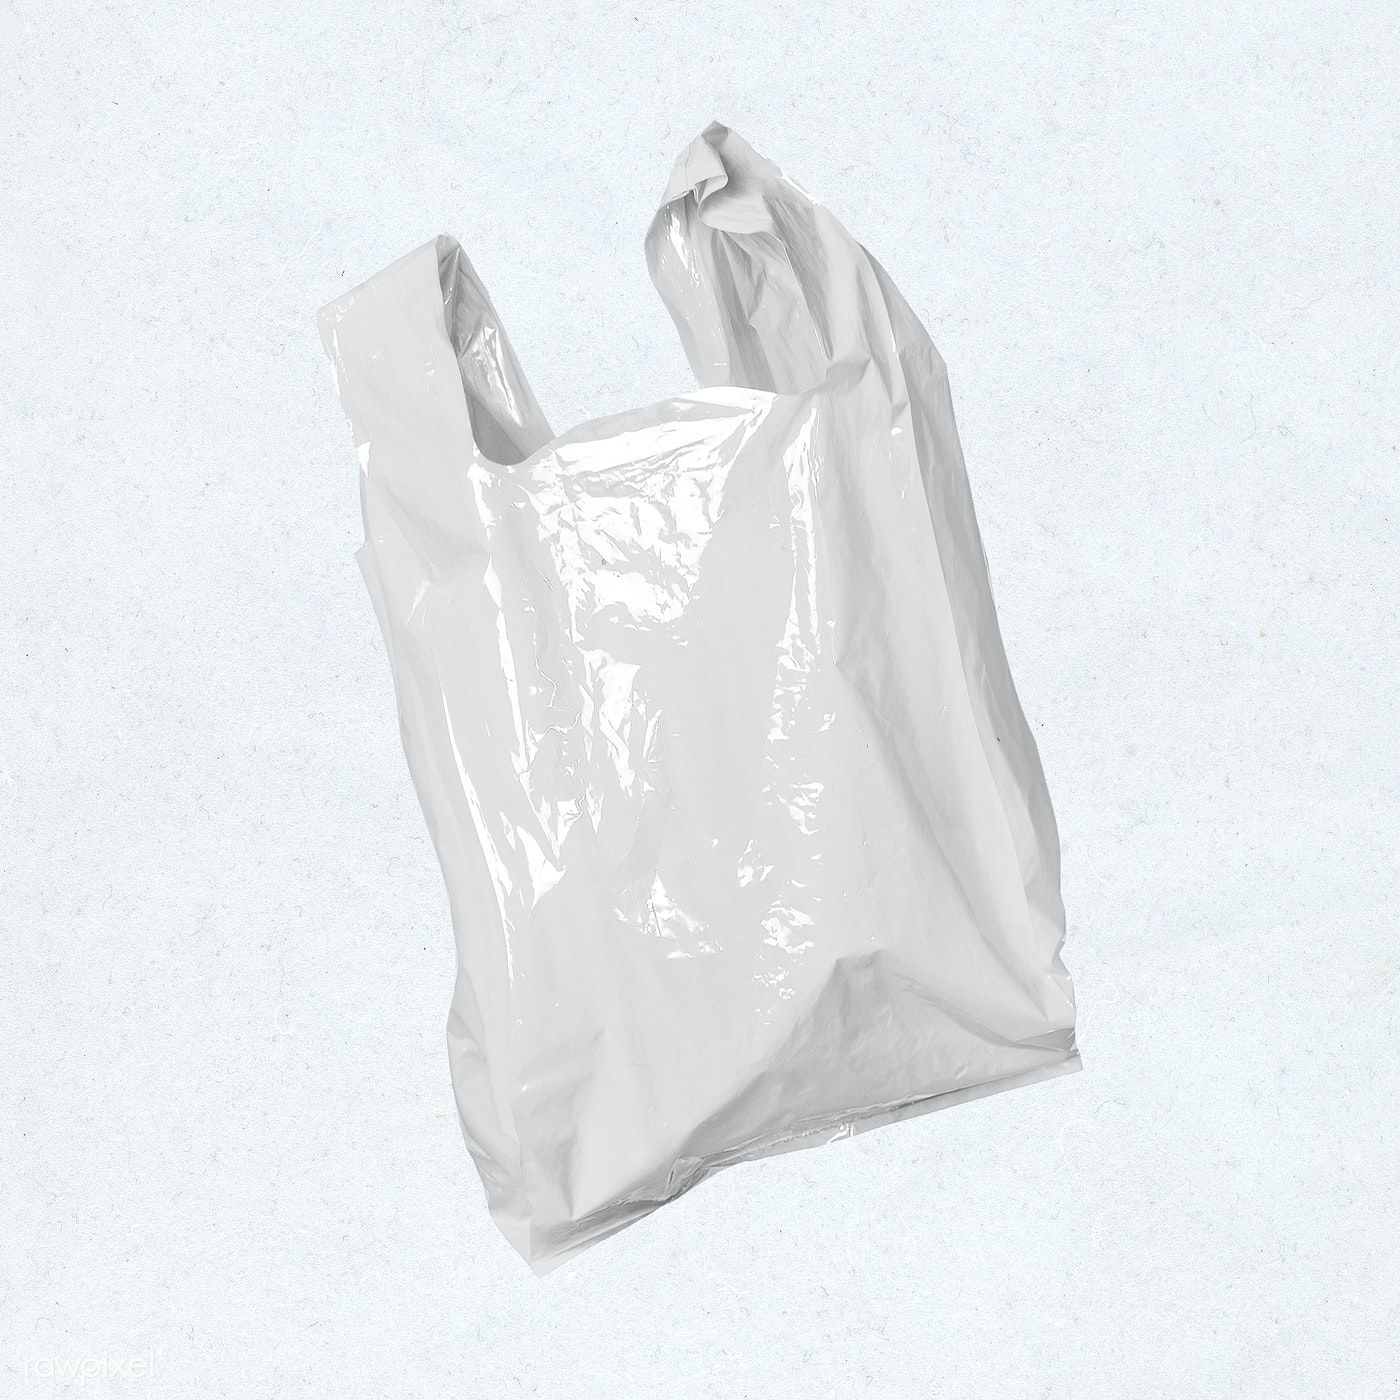 Download Download Premium Psd Of Shiny White Plastic Bag Mockup 2266996 Bag Mockup Plastic Bag Bag Illustration